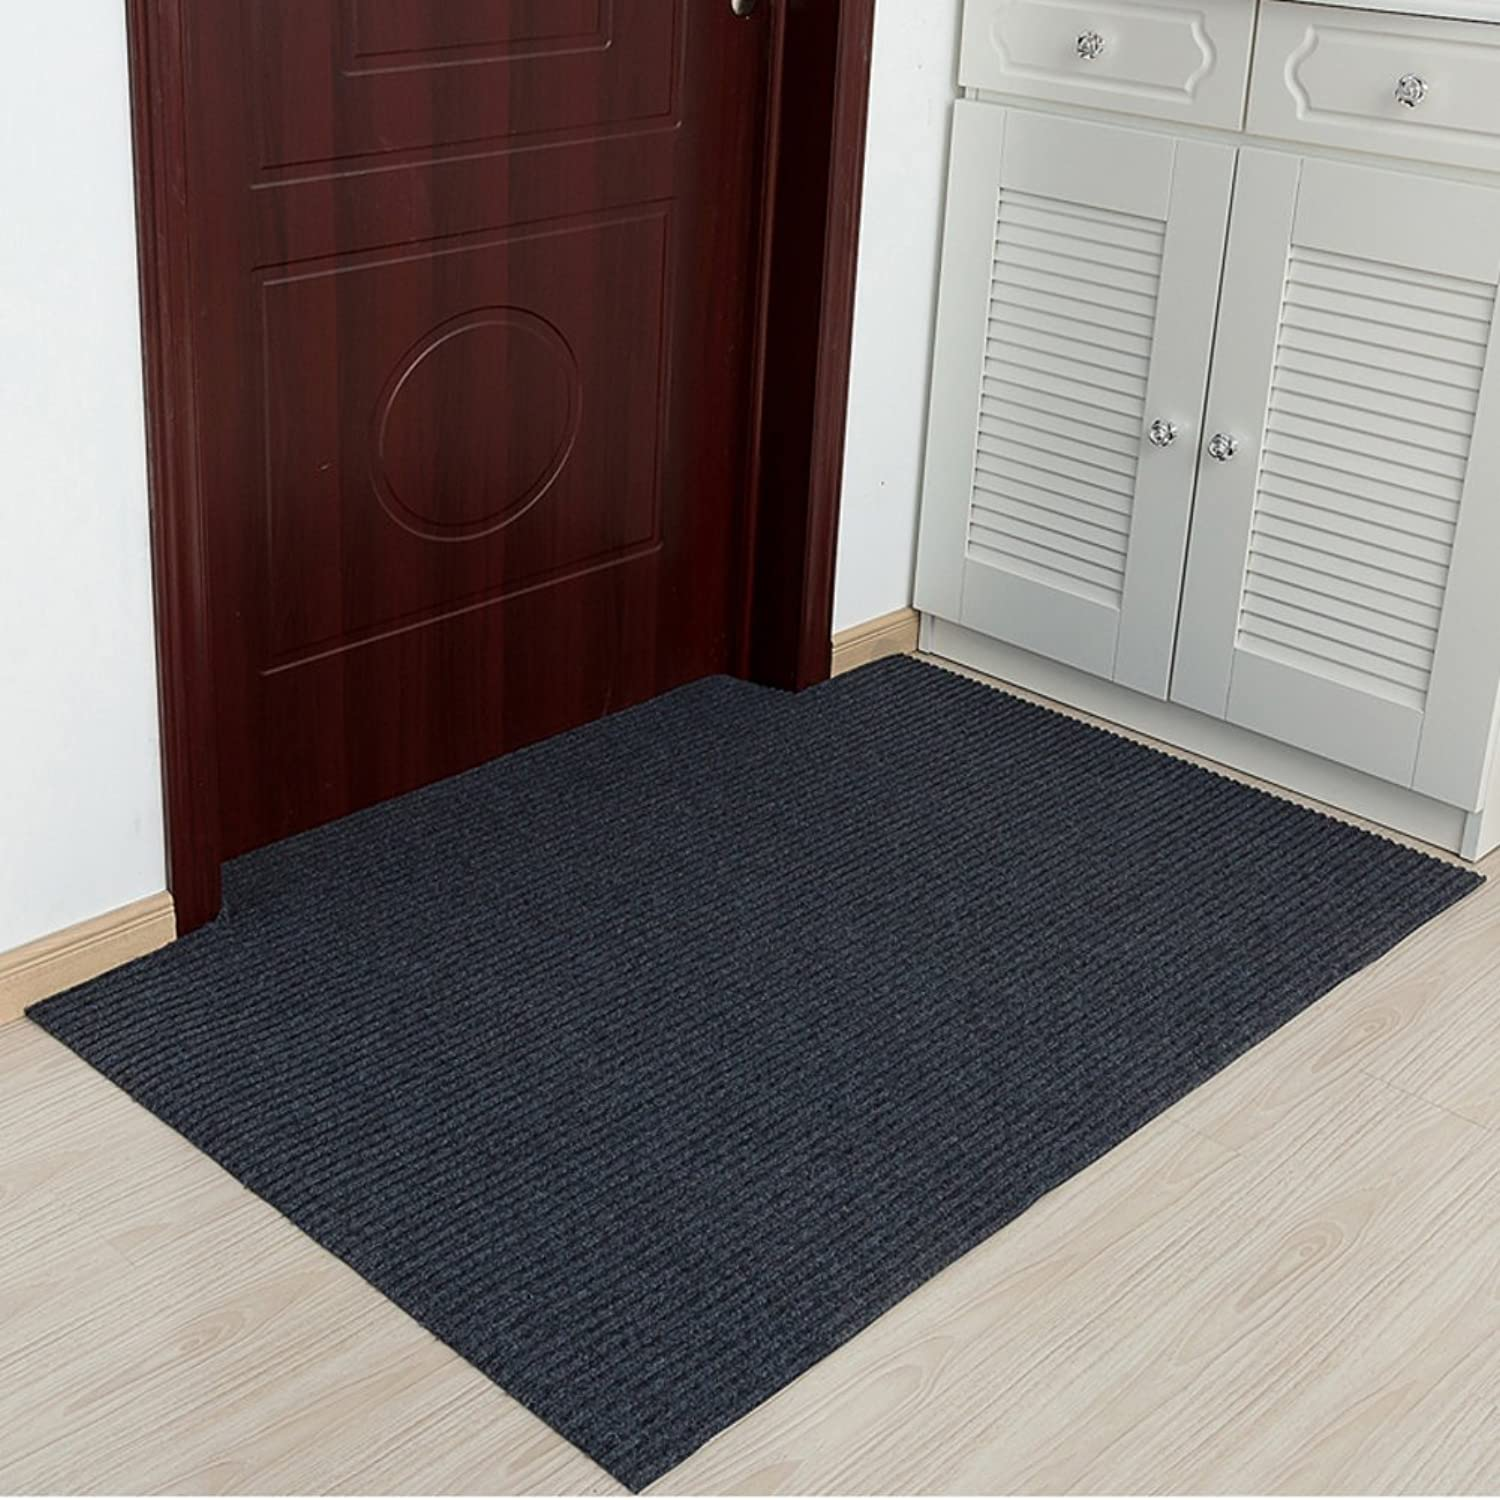 Carpet Door mats Foot pad Non-Slip Water Absorption Toilets Hall Home-C 90x180cm(35x71inch)